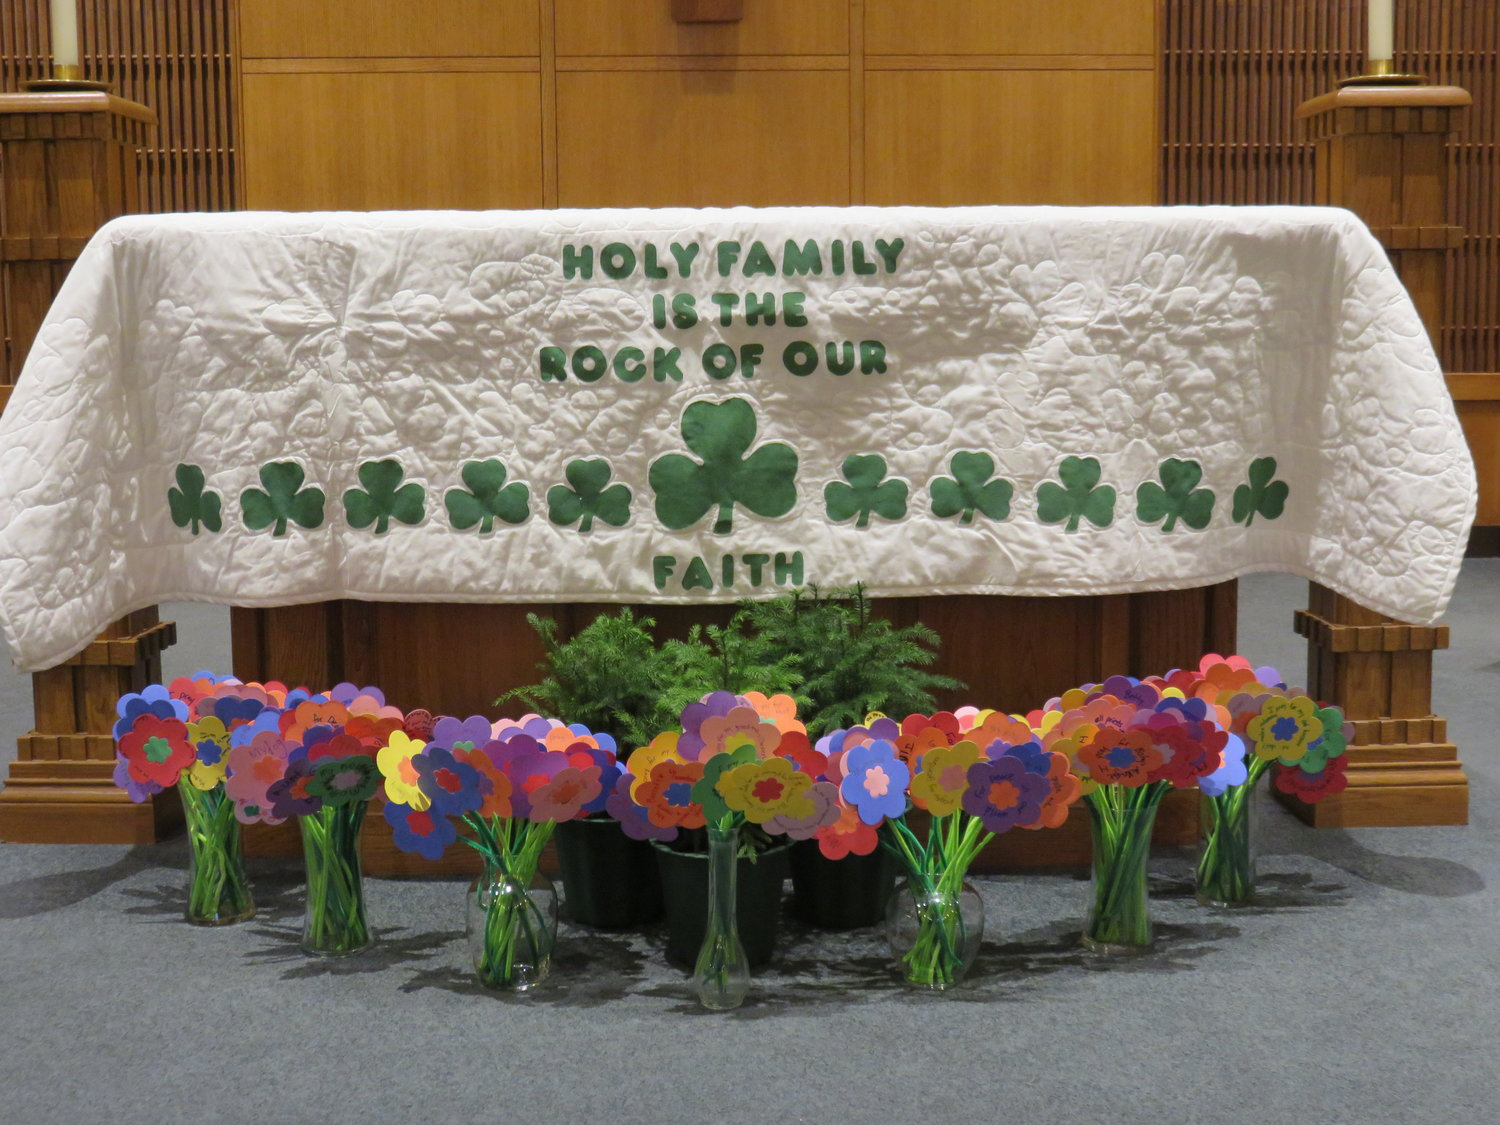 Students' prayer bouquets are displayed in vases before the altar of Holy Family Church in Hannibal during the school's celebration of prayer during Catholic Schools Week.